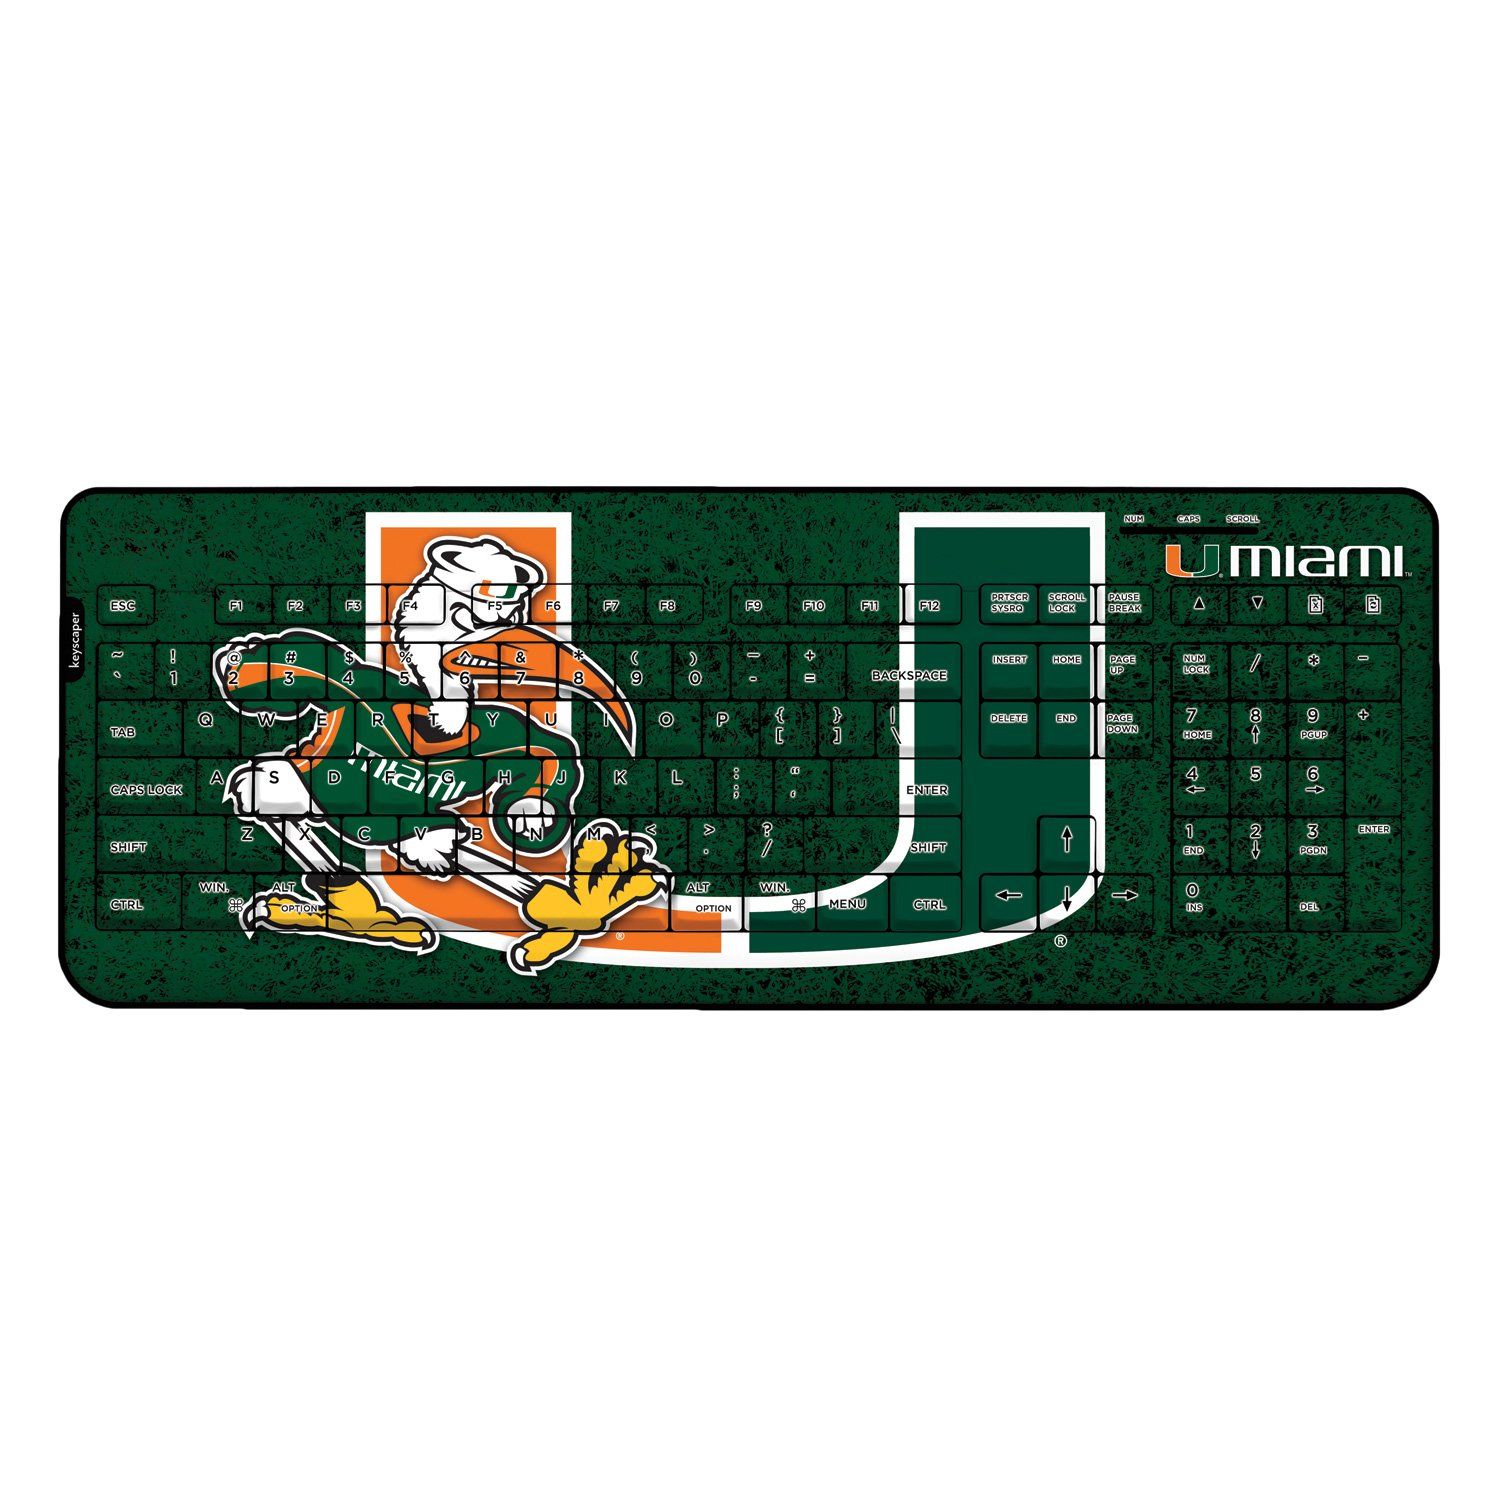 Miami Hurricanes Keyscaper Wired Keyboard Licensed by the NCAA